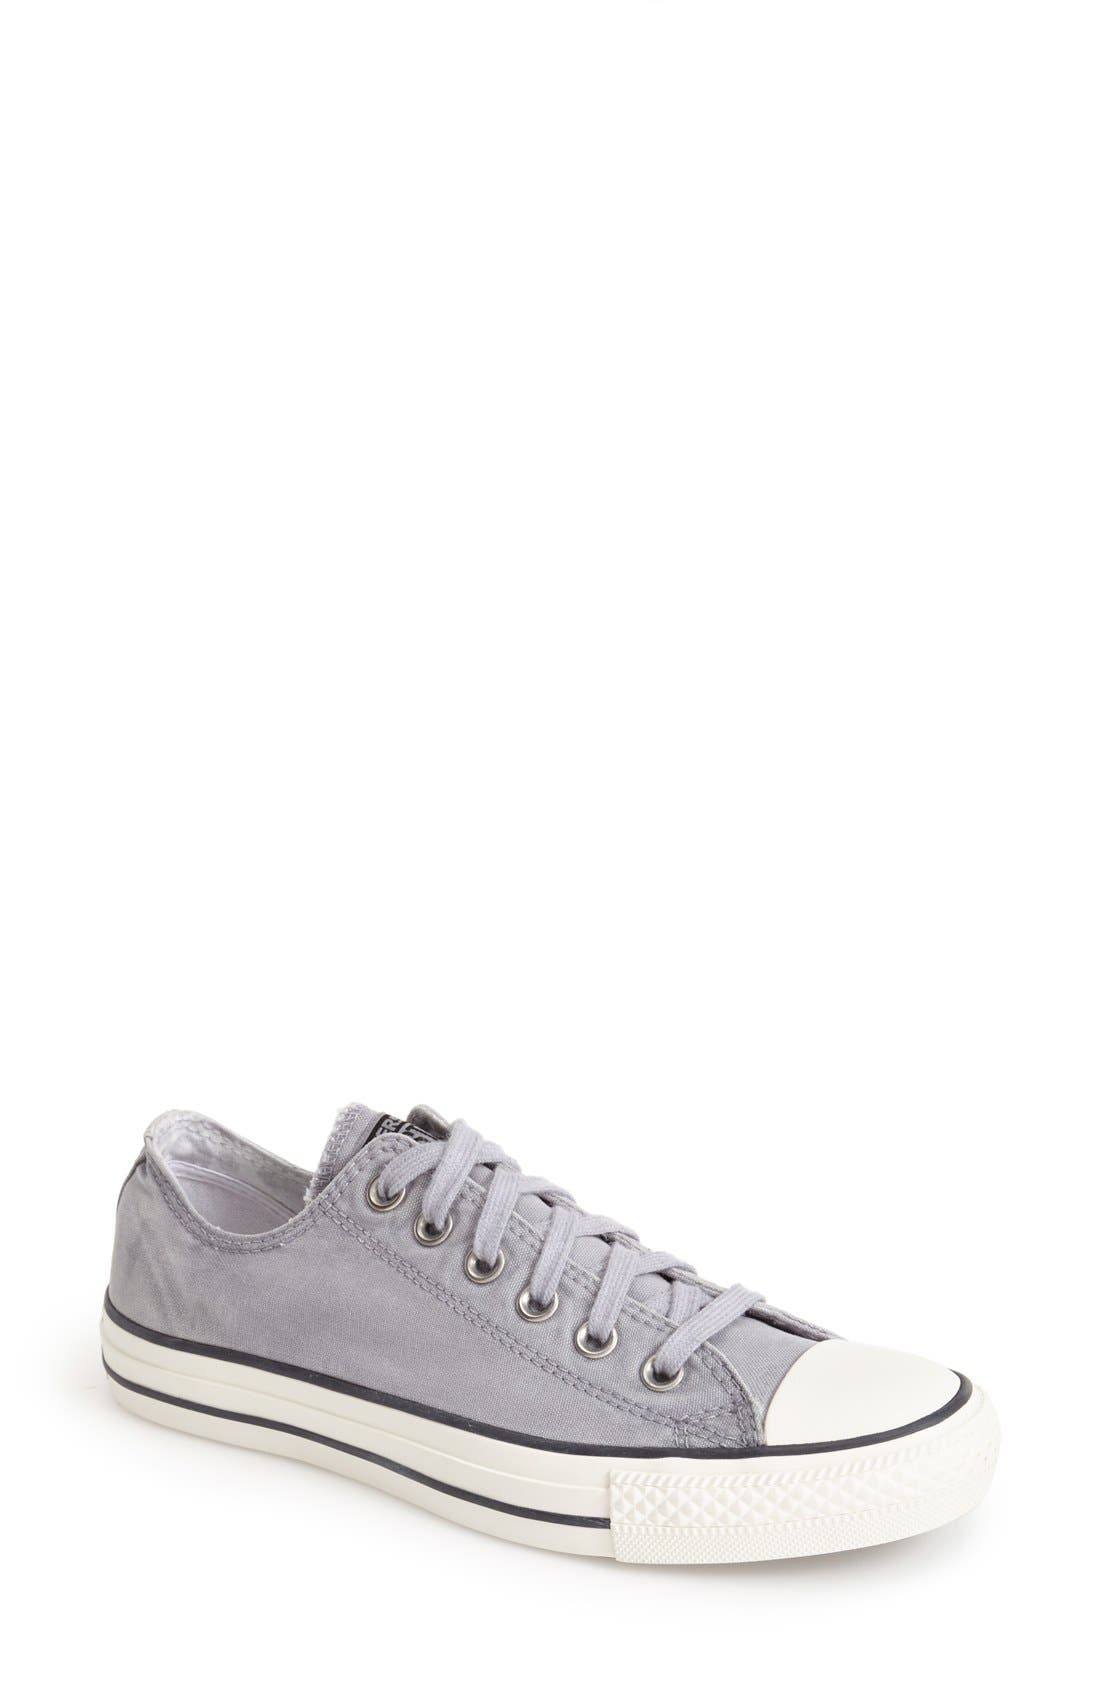 Main Image - Converse Chuck Taylor® All Star® 'White Wash Ox' Sneaker (Women)